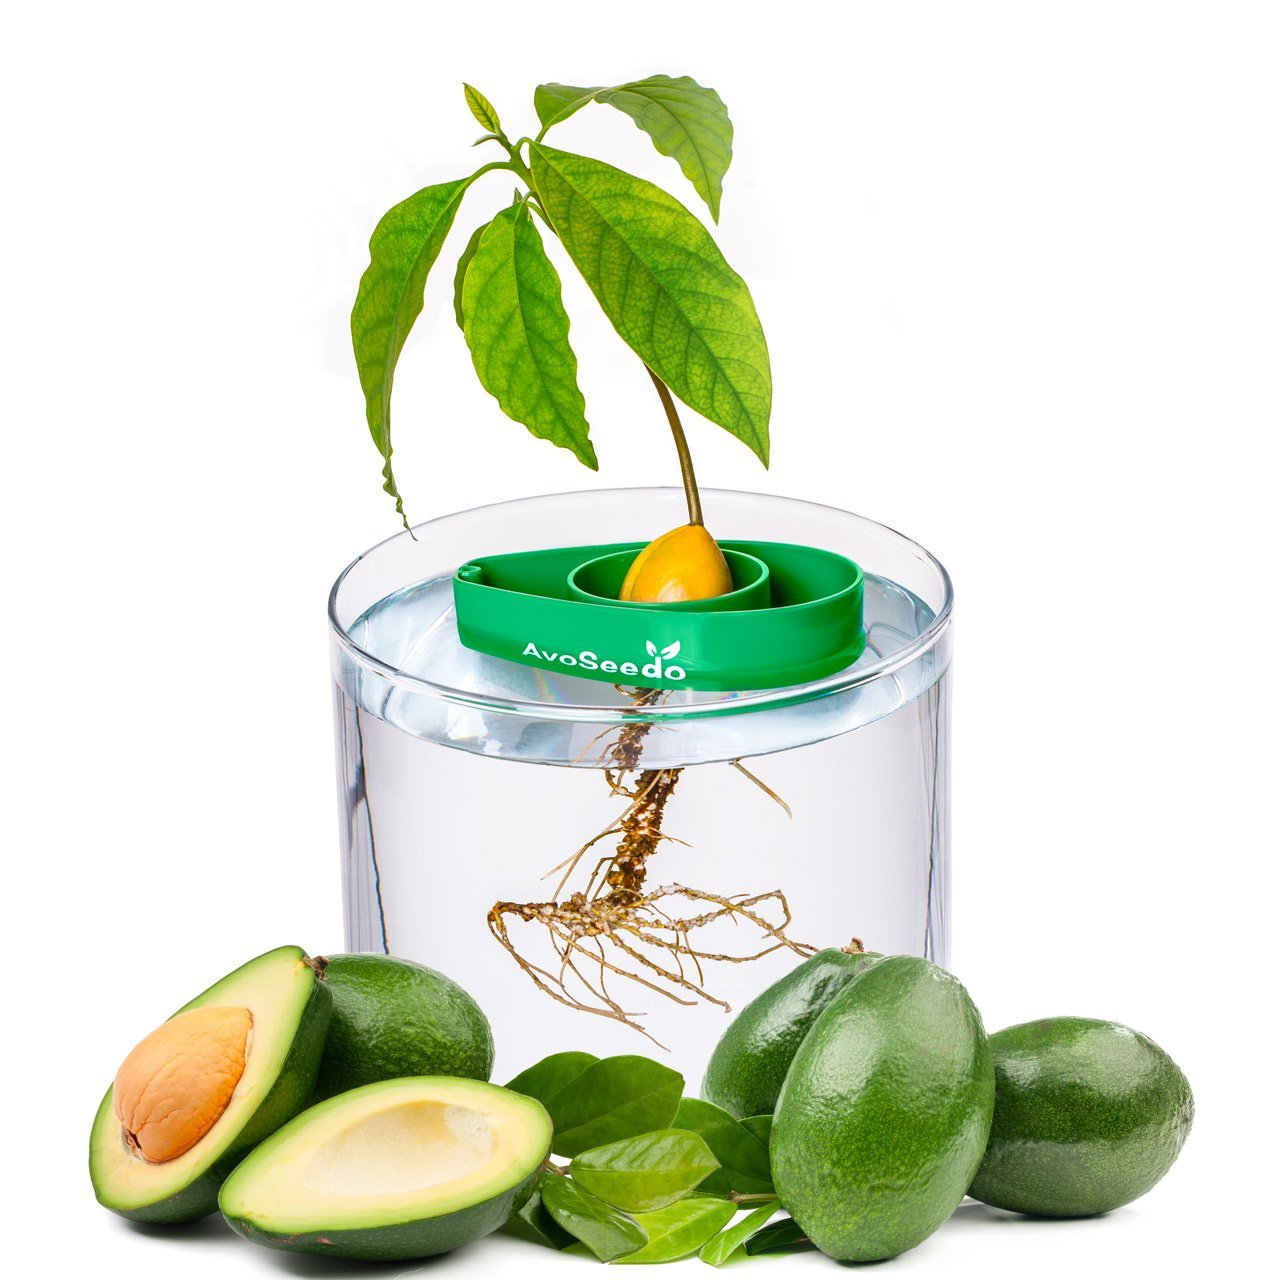 Perfect Avocado Tree Growing Kit for Every Avocado Lover, $10 @amazon.com